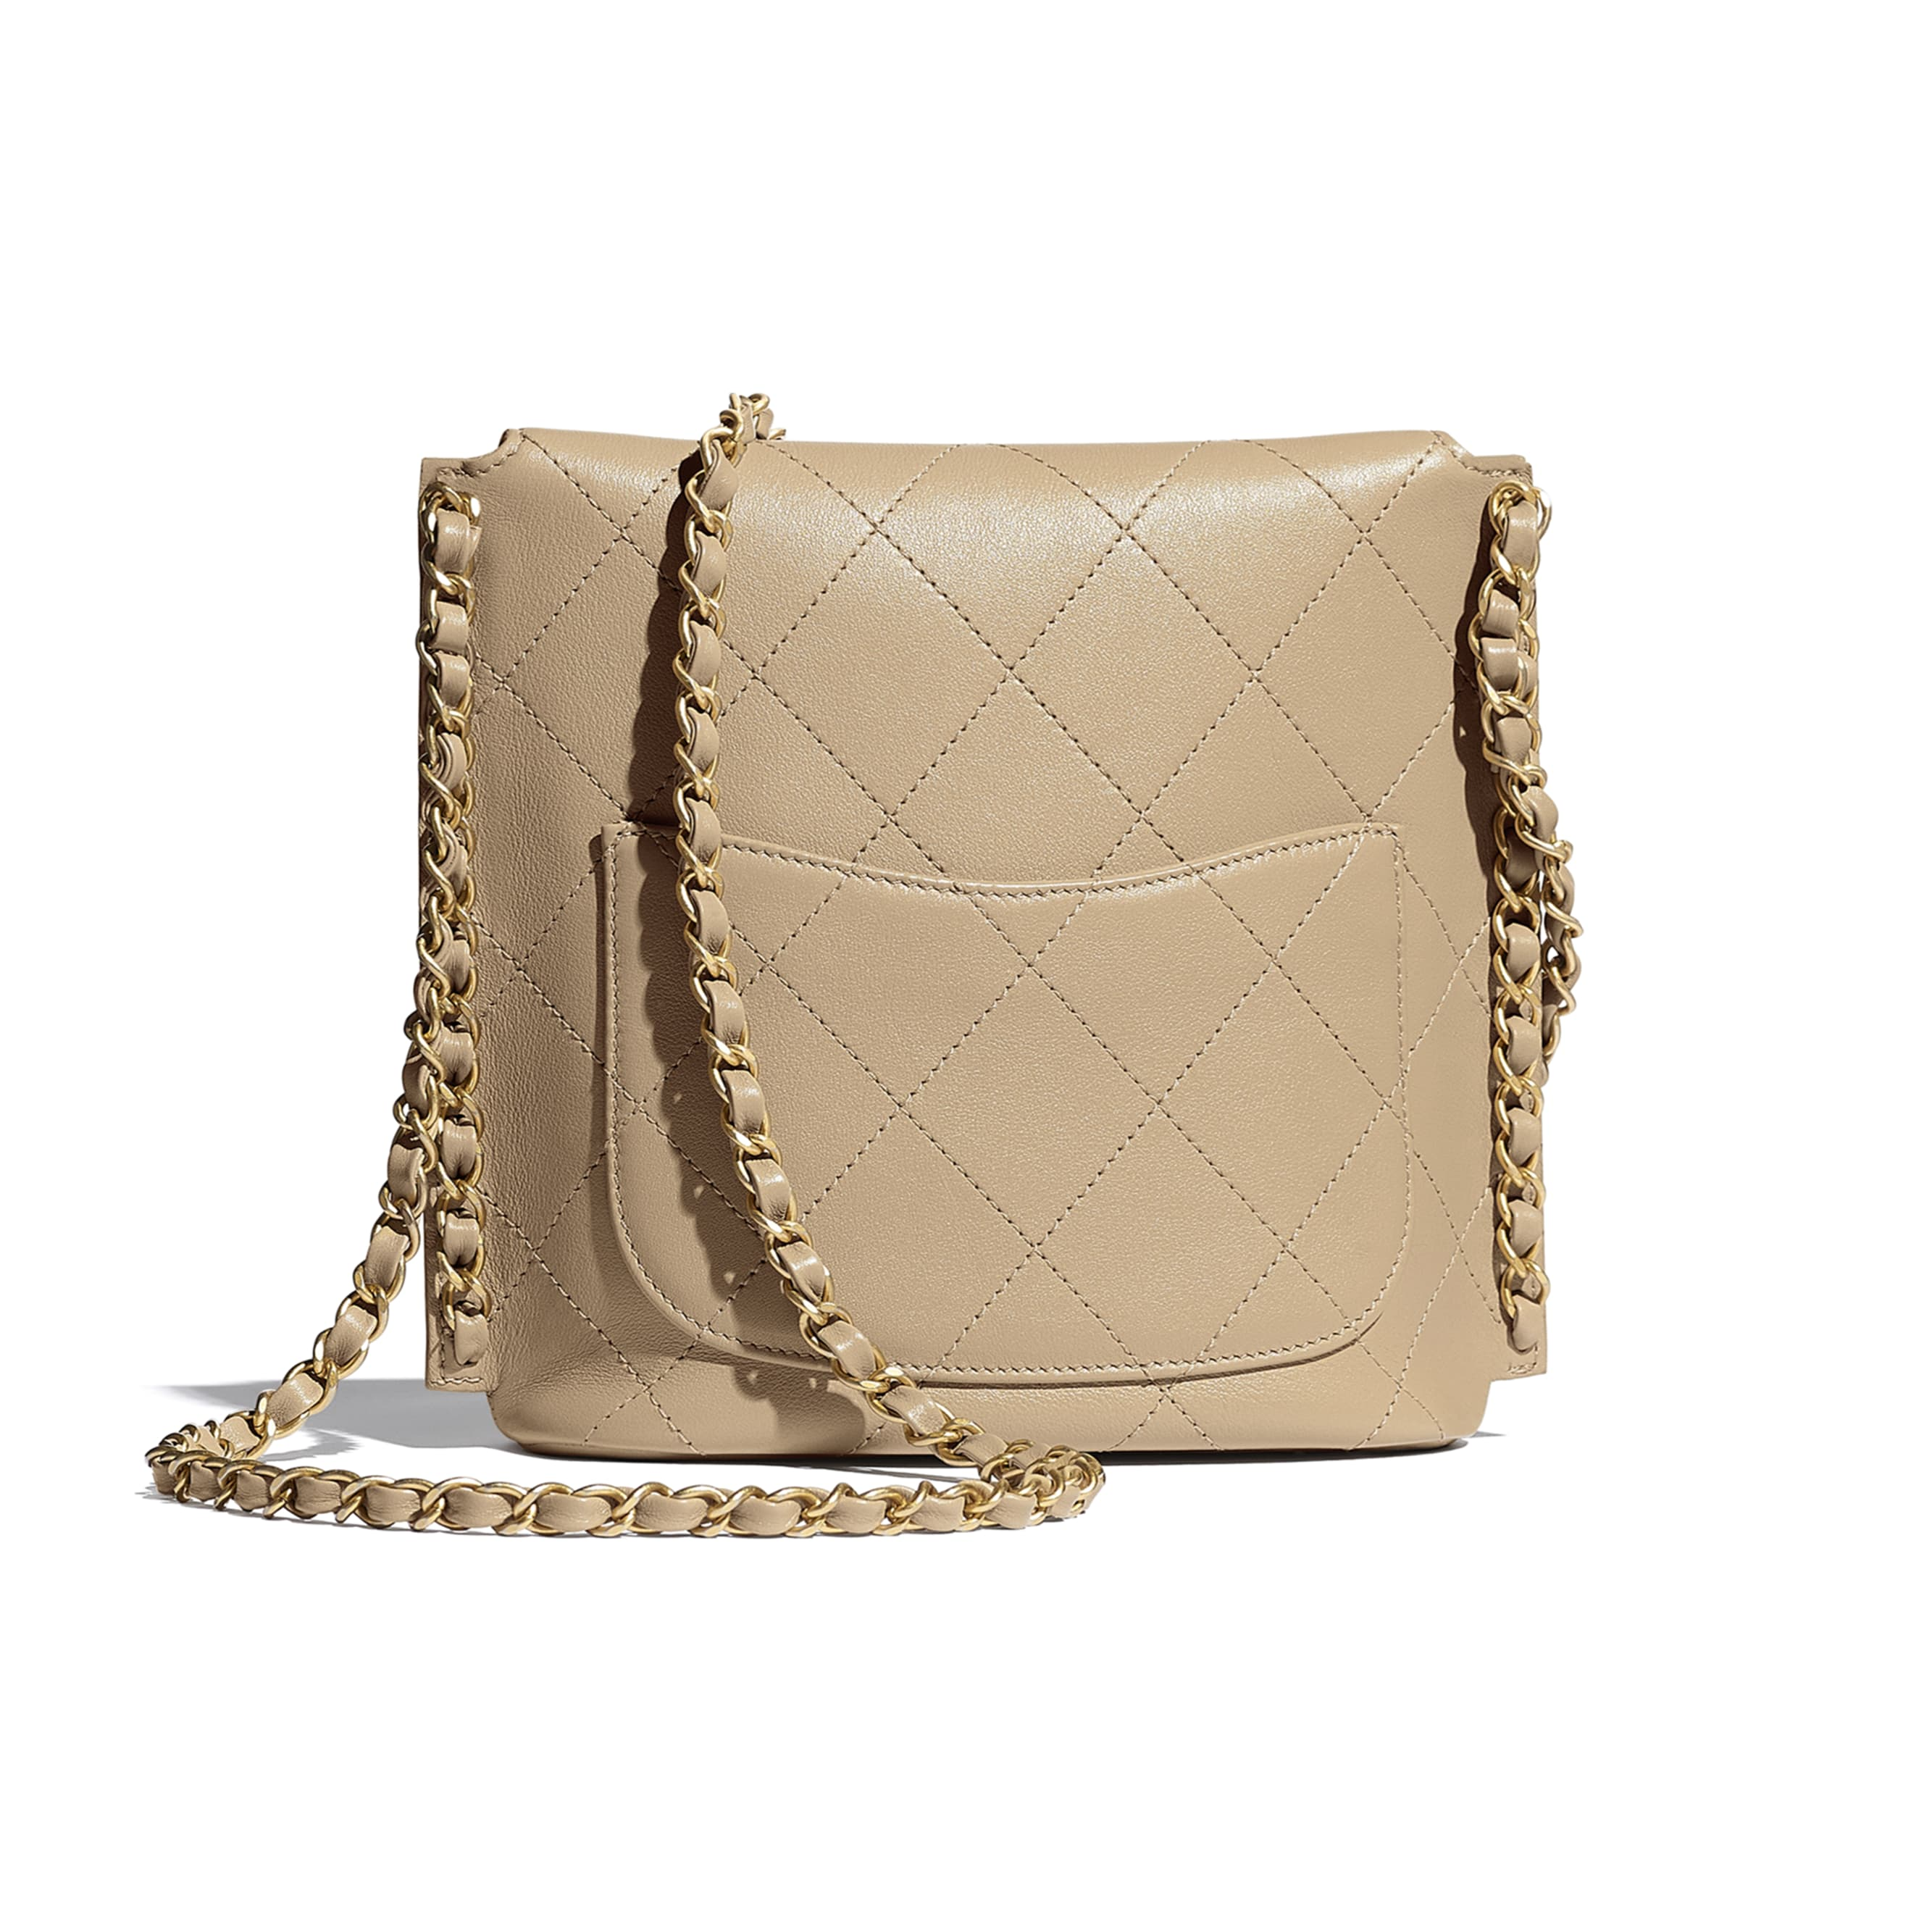 Small Hobo Bag - Beige - Calfskin & Gold-Tone Metal - CHANEL - Alternative view - see standard sized version